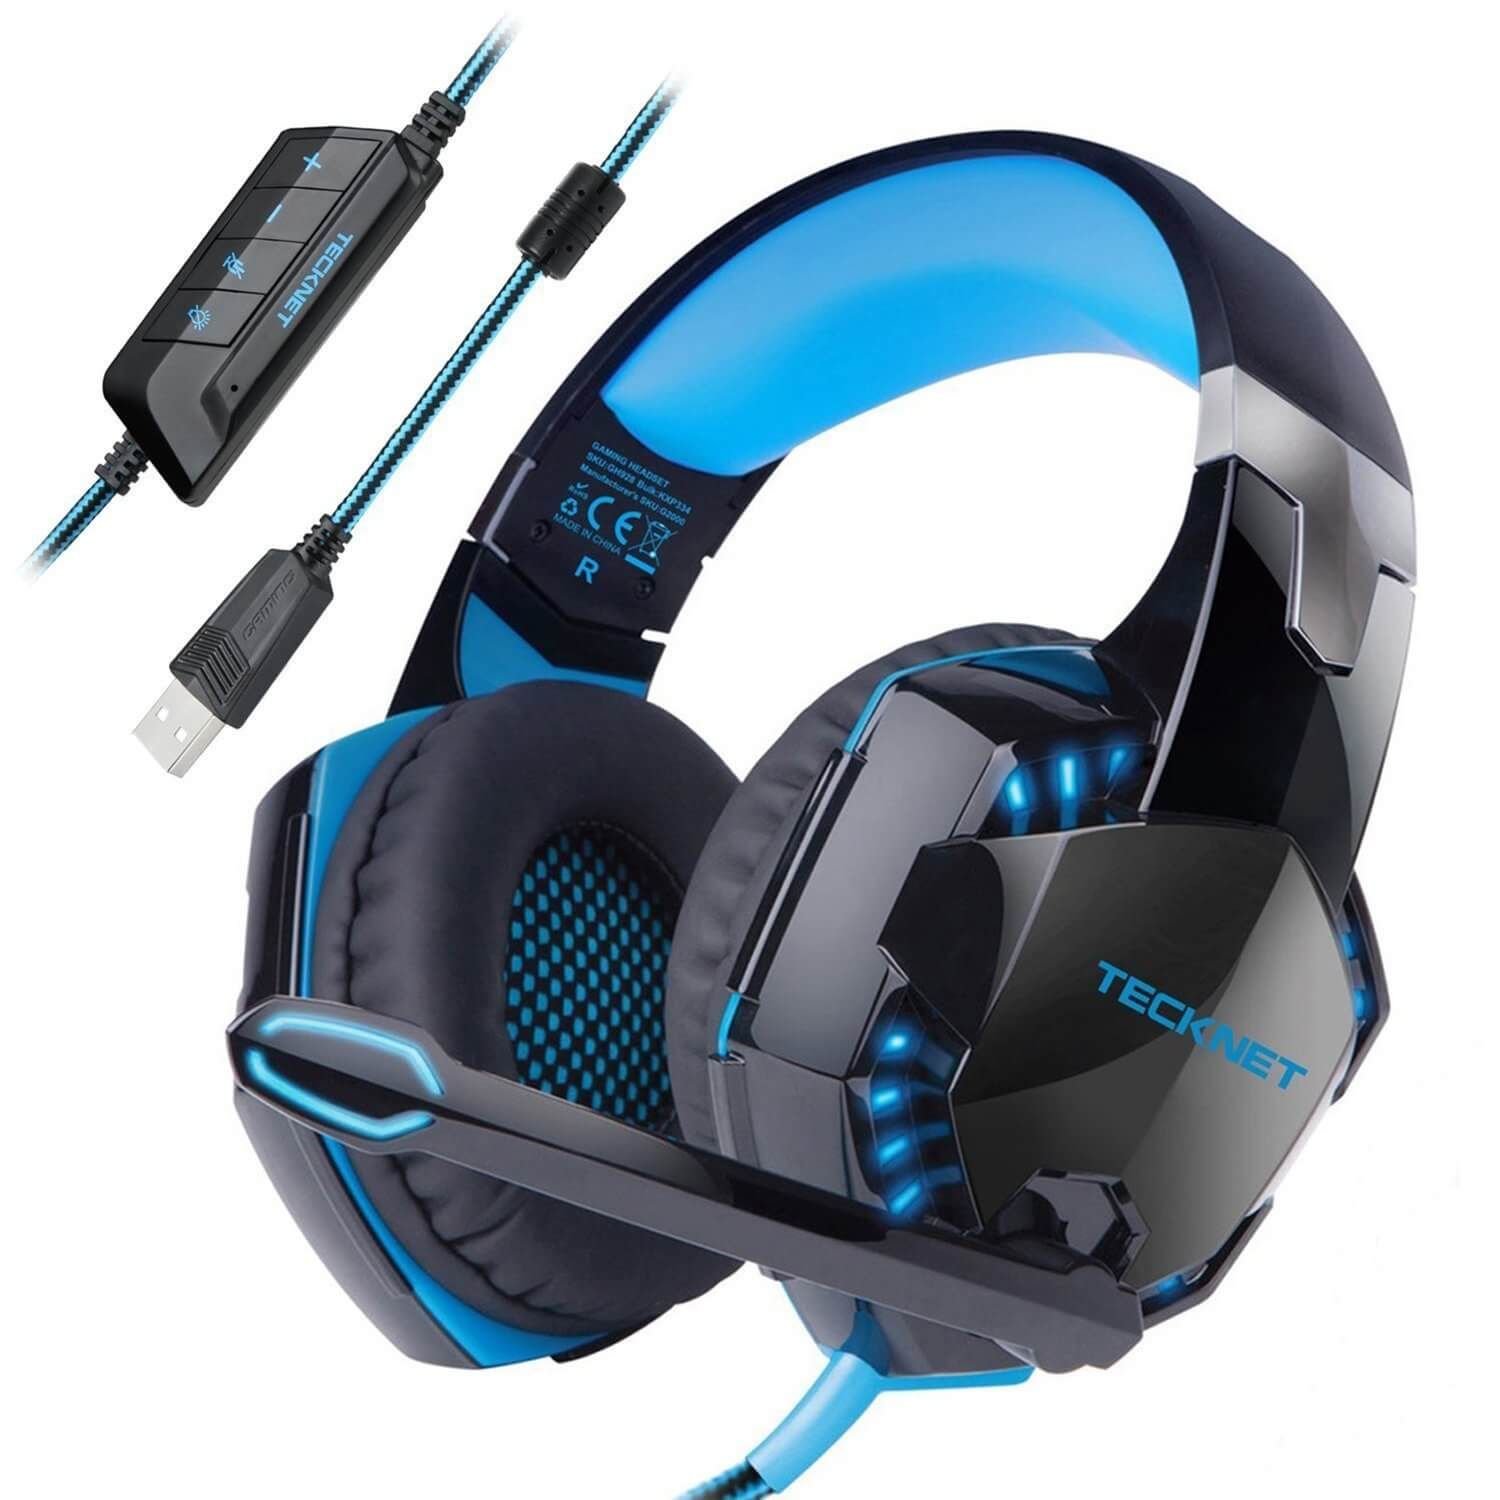 tecknet gh928 7 1 channel surround sound gaming headset. Black Bedroom Furniture Sets. Home Design Ideas